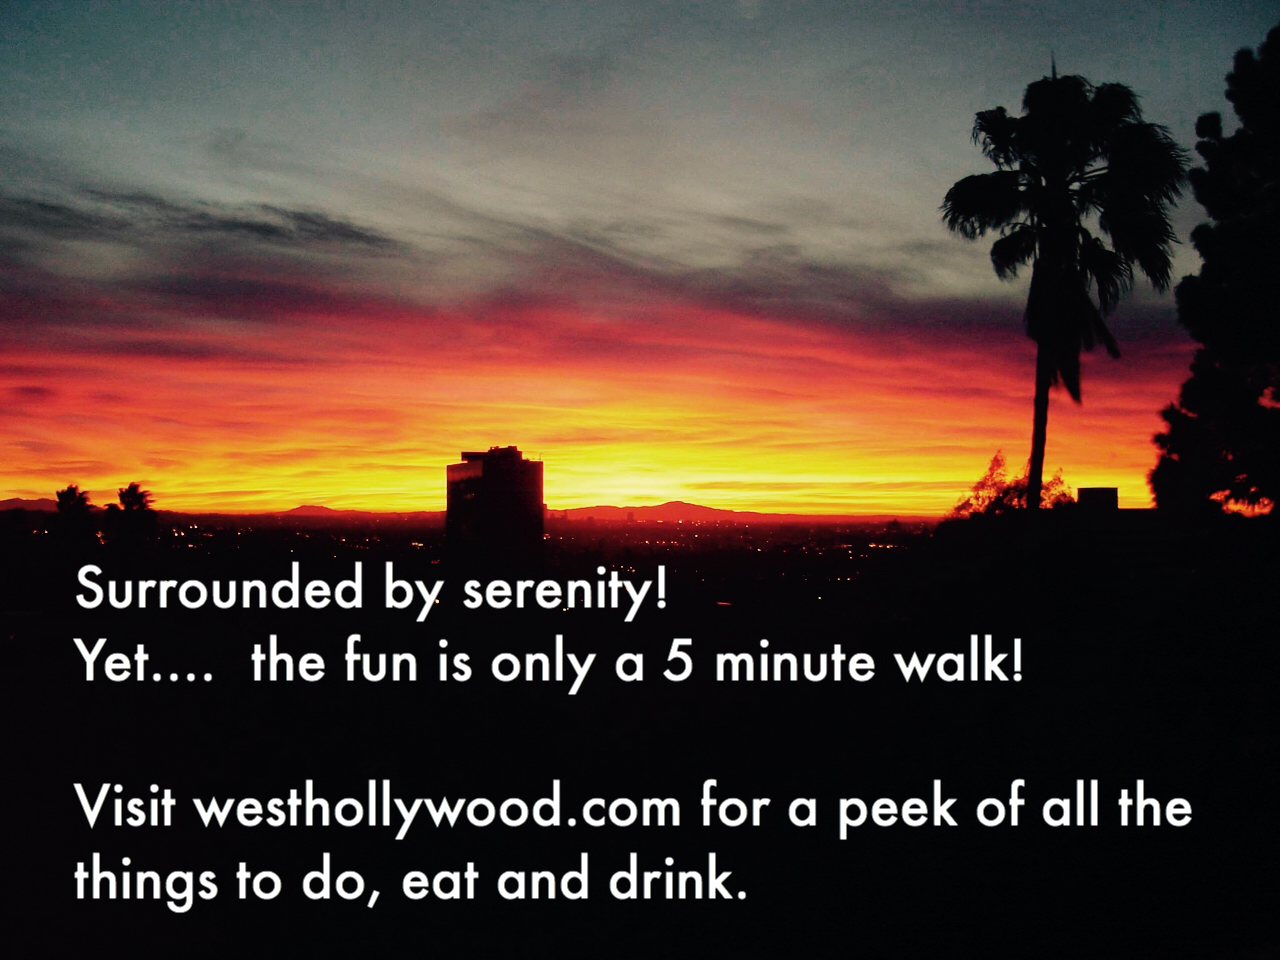 westhollywood com reference pic